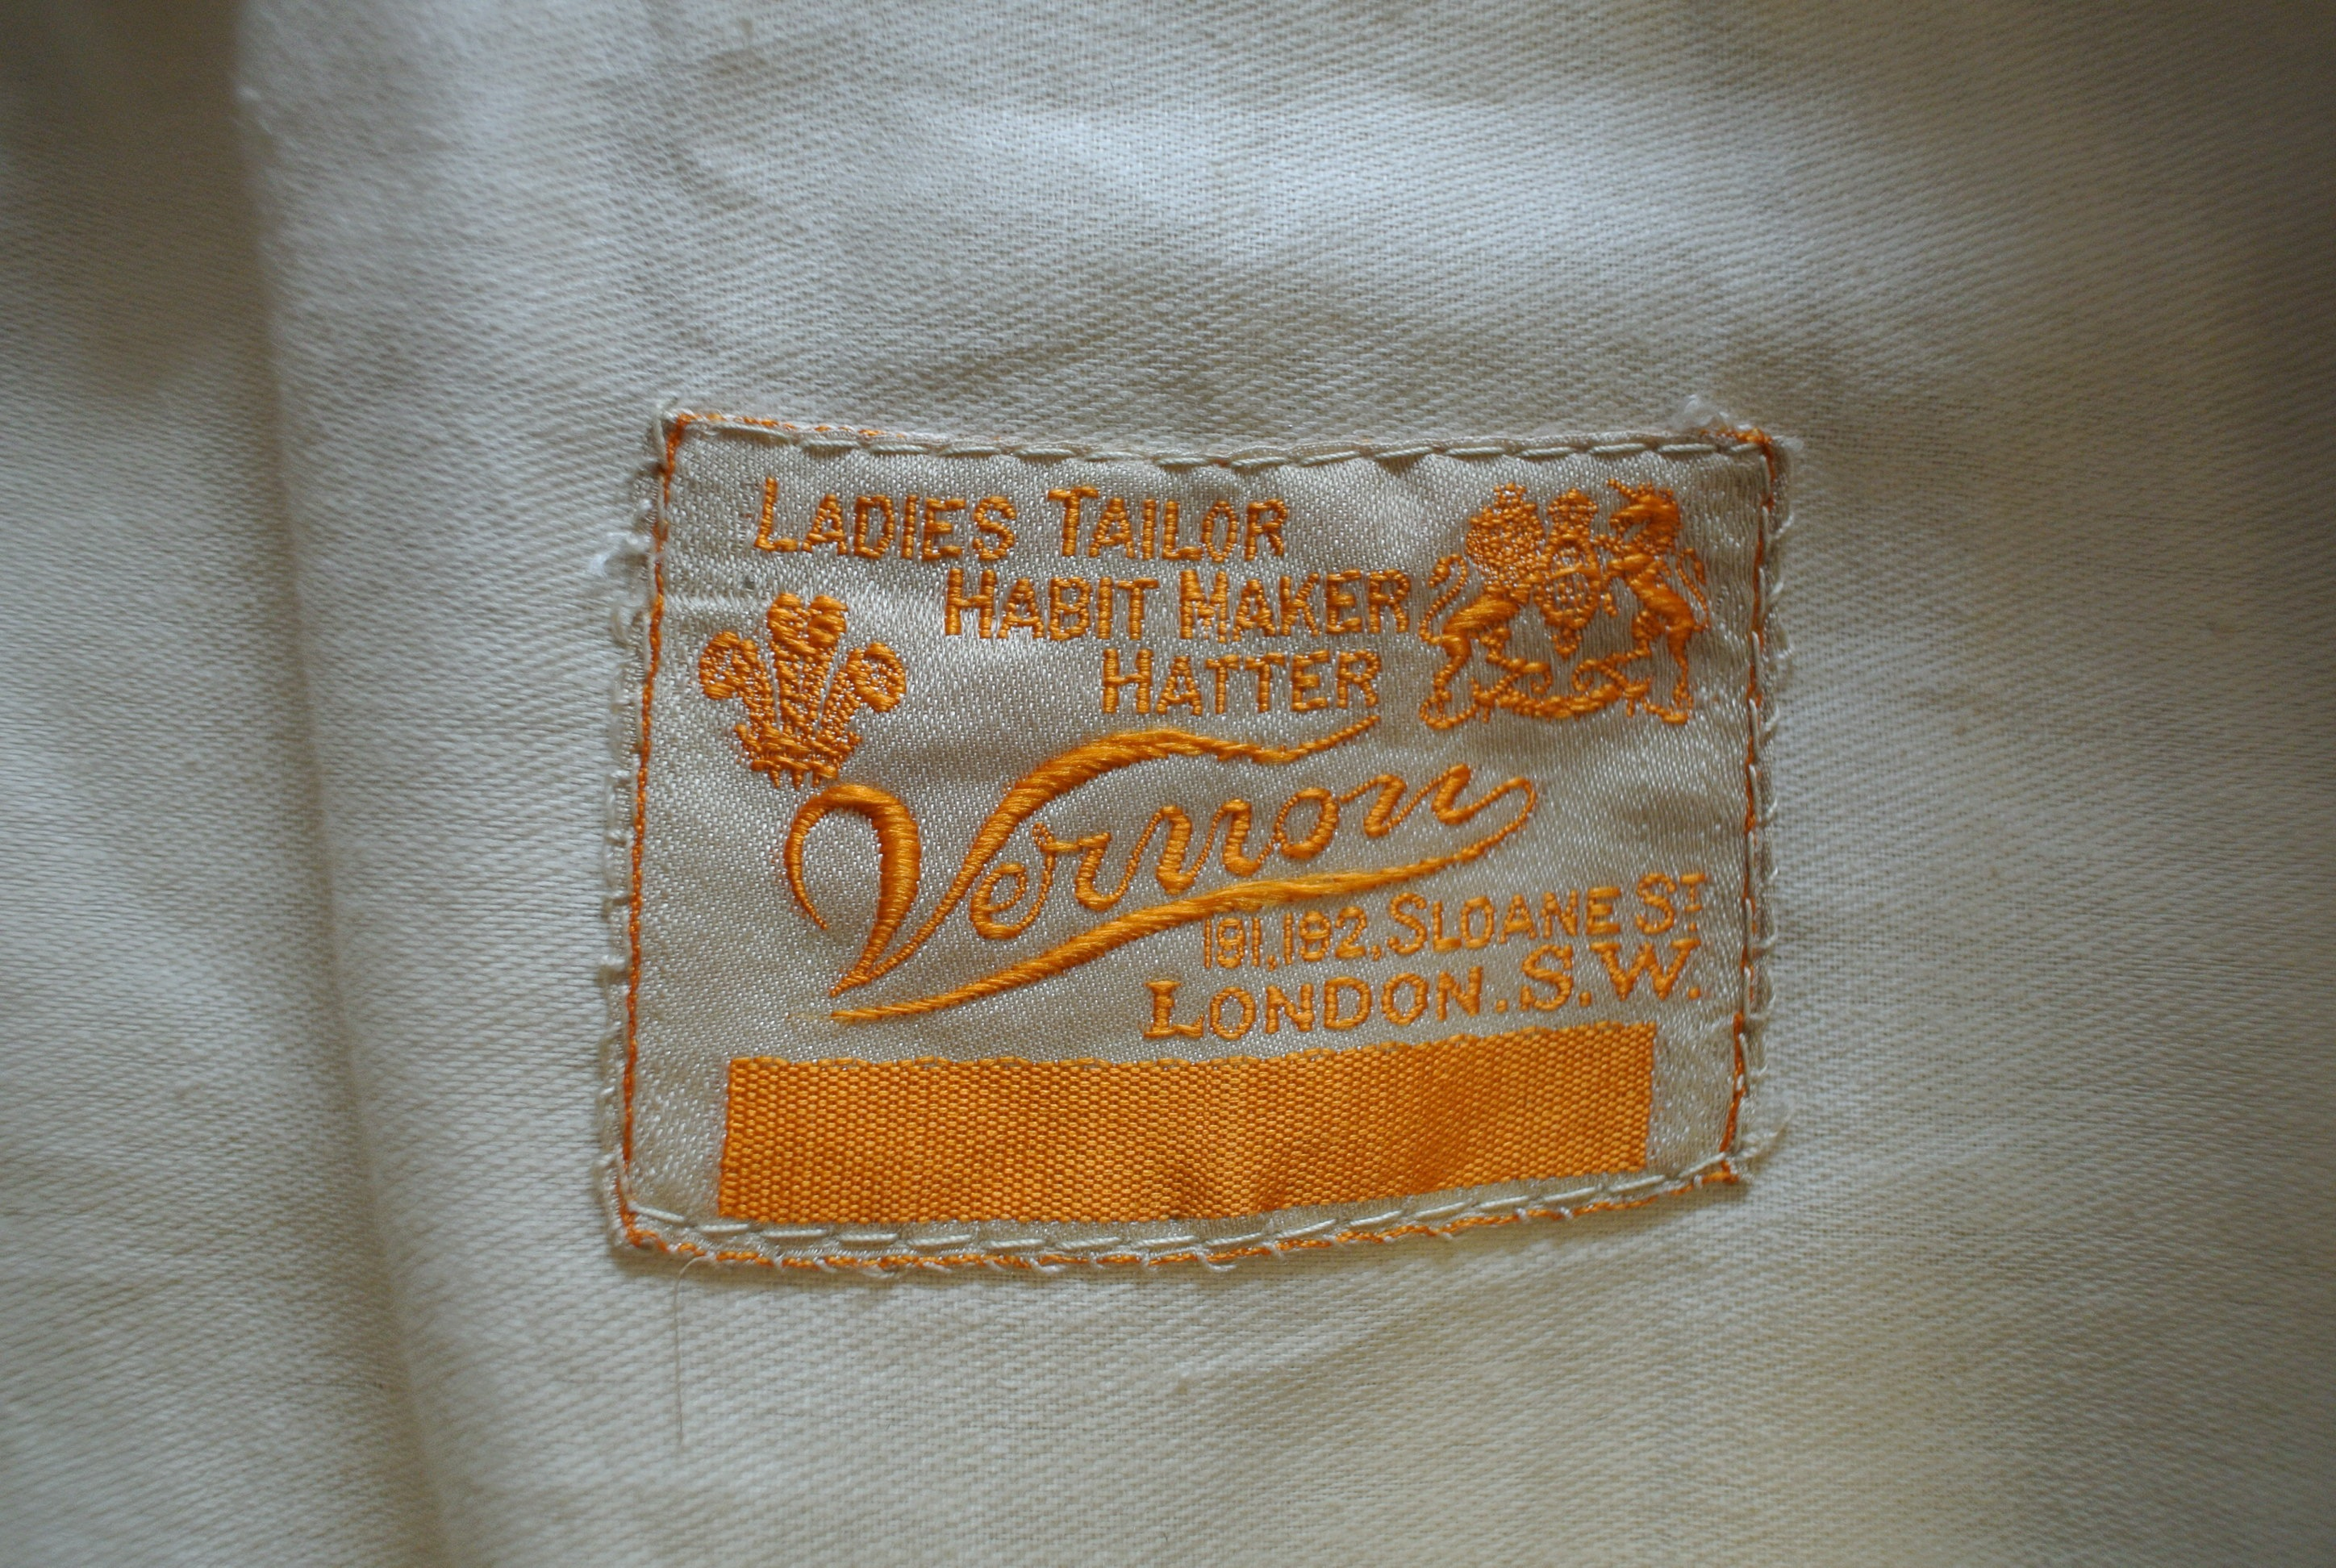 Digital label embroidery designs bikes bloomers